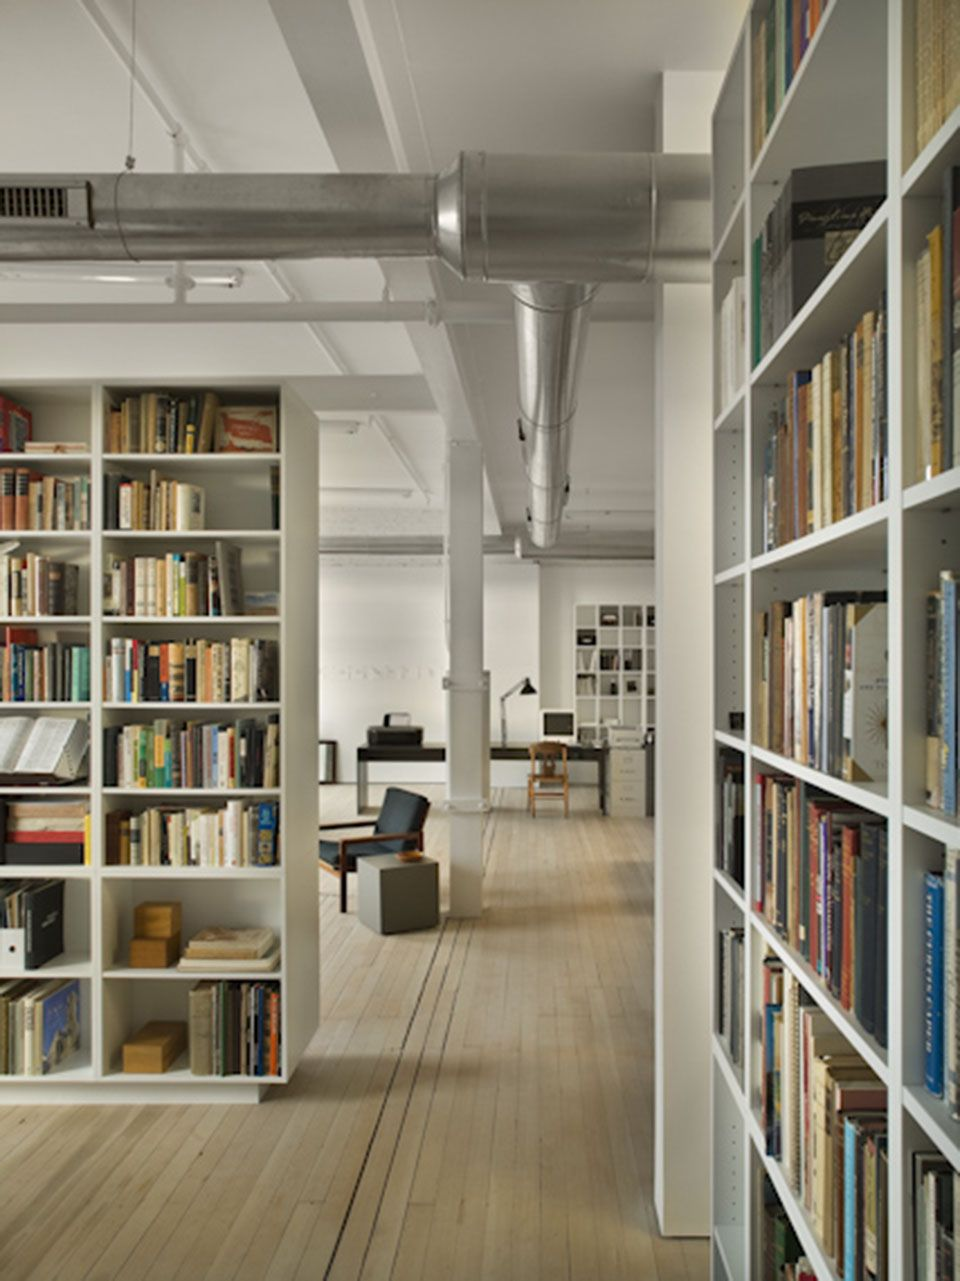 Super Minimalist Loft In Philly But So Warm And Welcoming With All Those Books White By Philadelphia Smart Storage Bookshelves Display